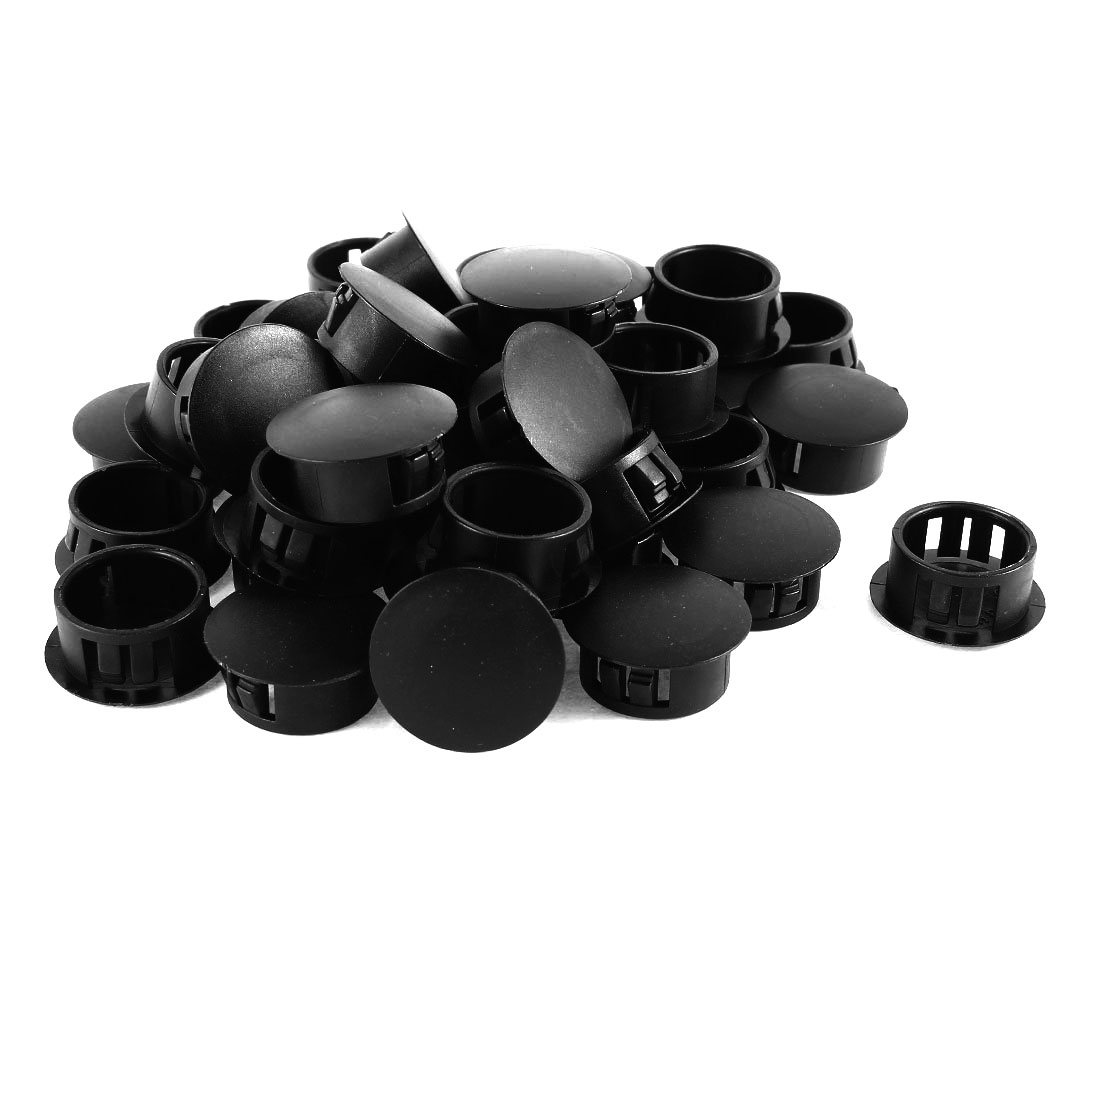 "40 Pcs Black Plastic Locking 3/4"" 19mm Dia. Panel Hole Plugs"